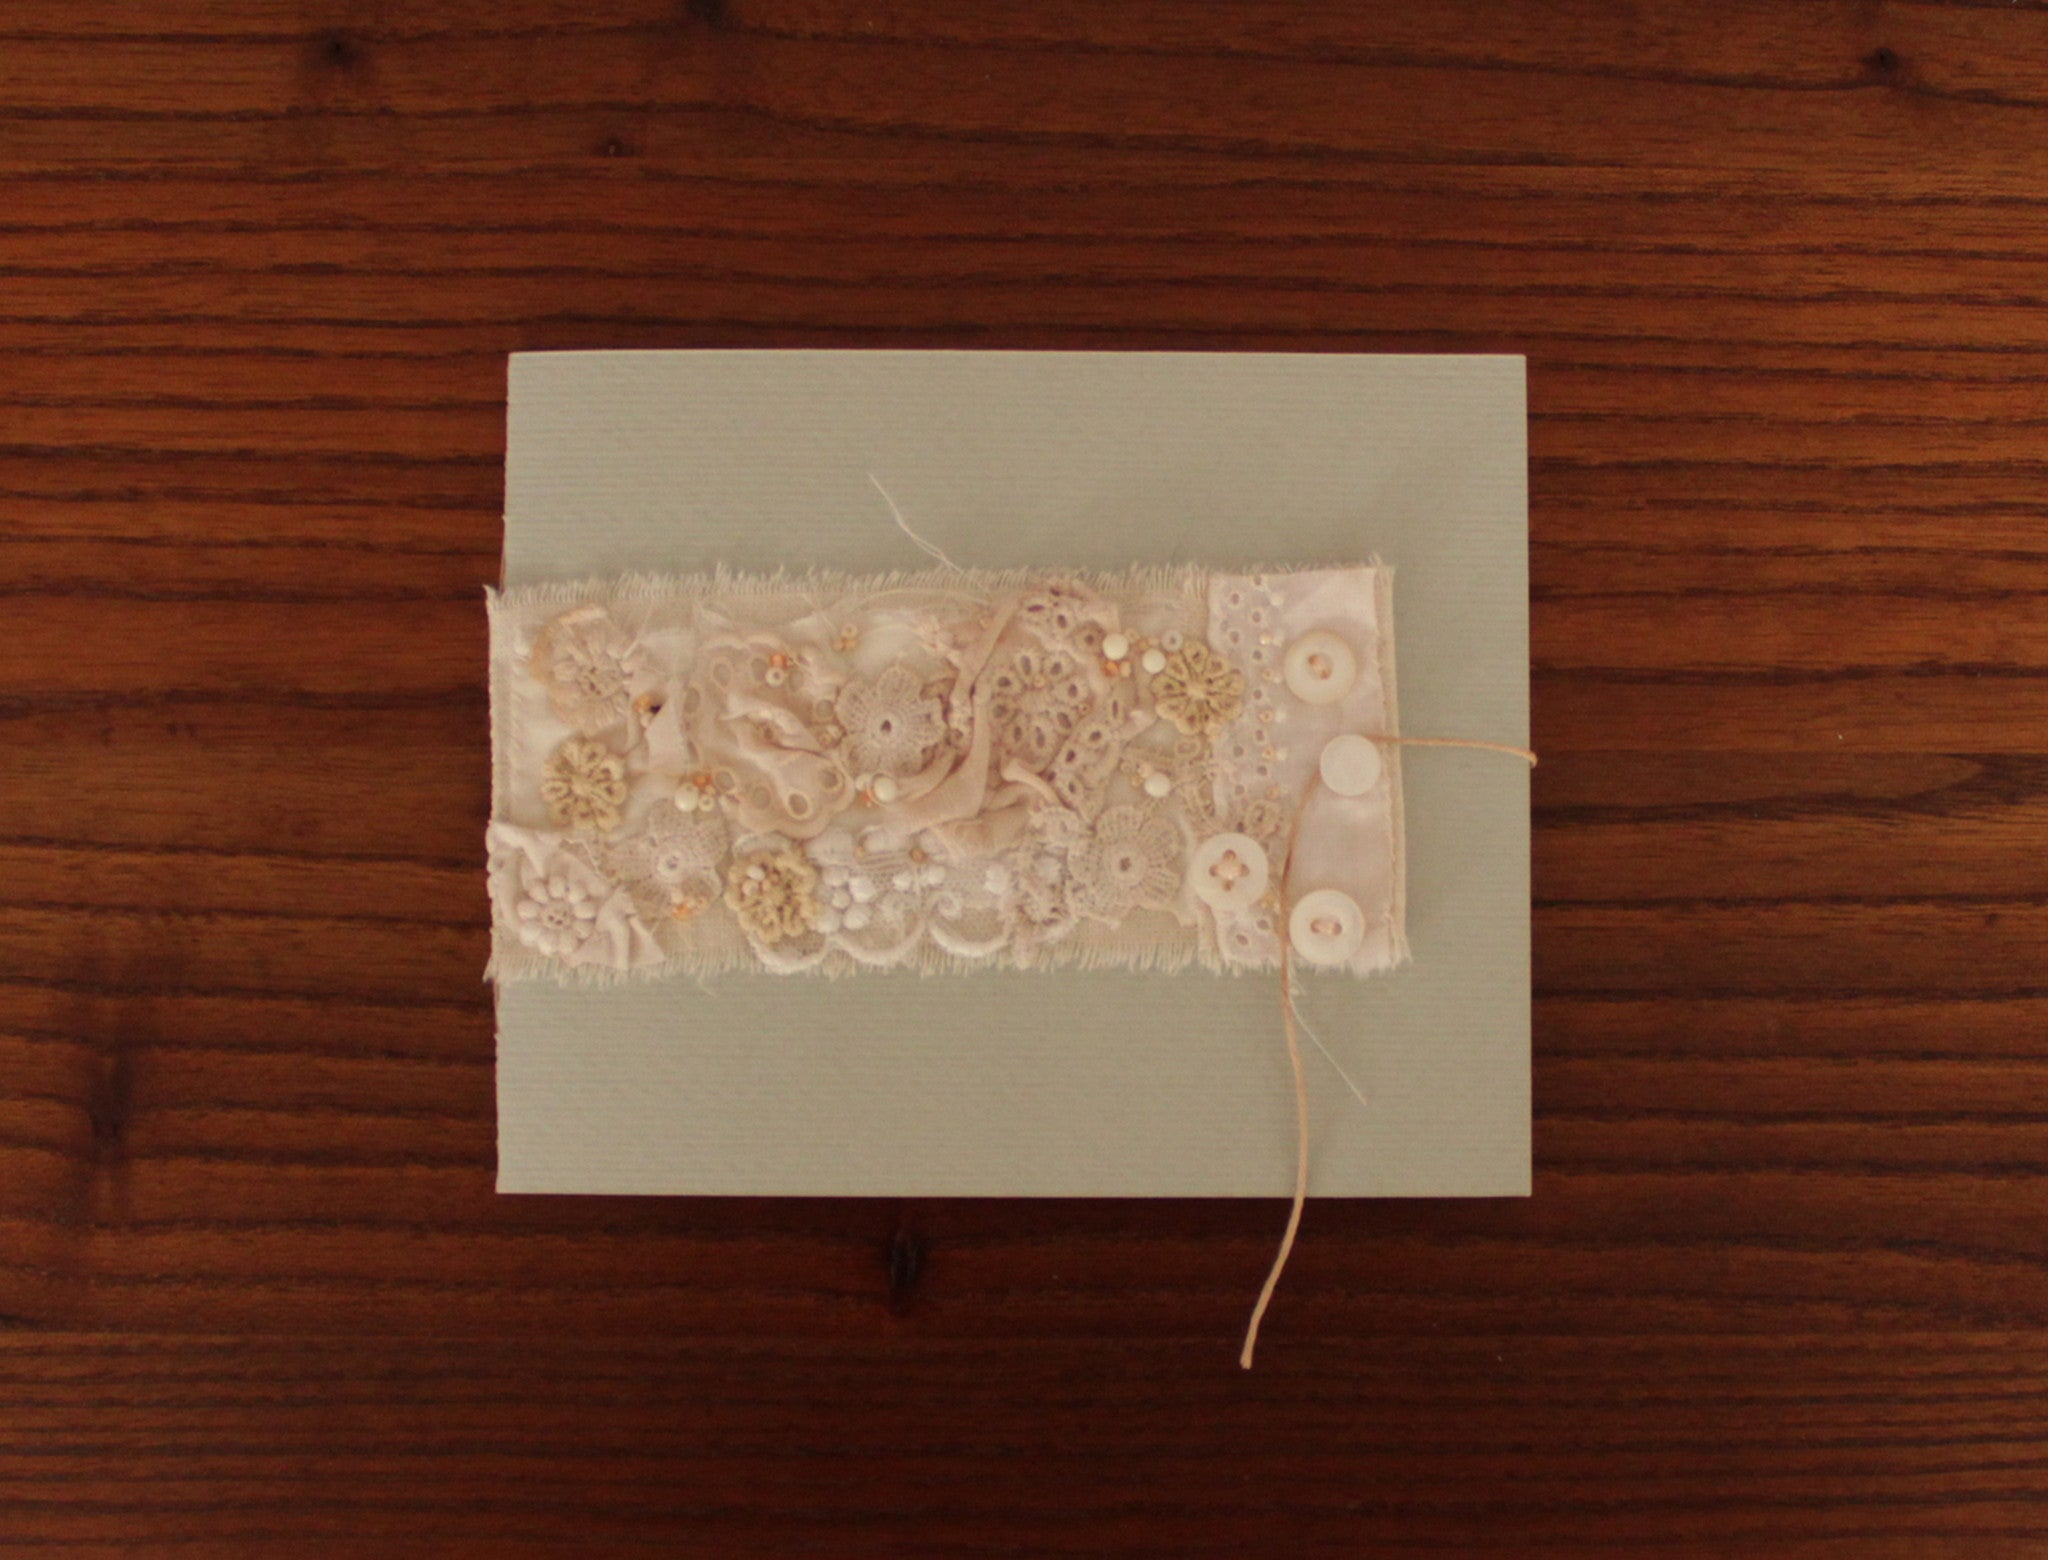 Romantic booklet-card handmade with vintage laces and cotton envelopes. Singles or set of 6